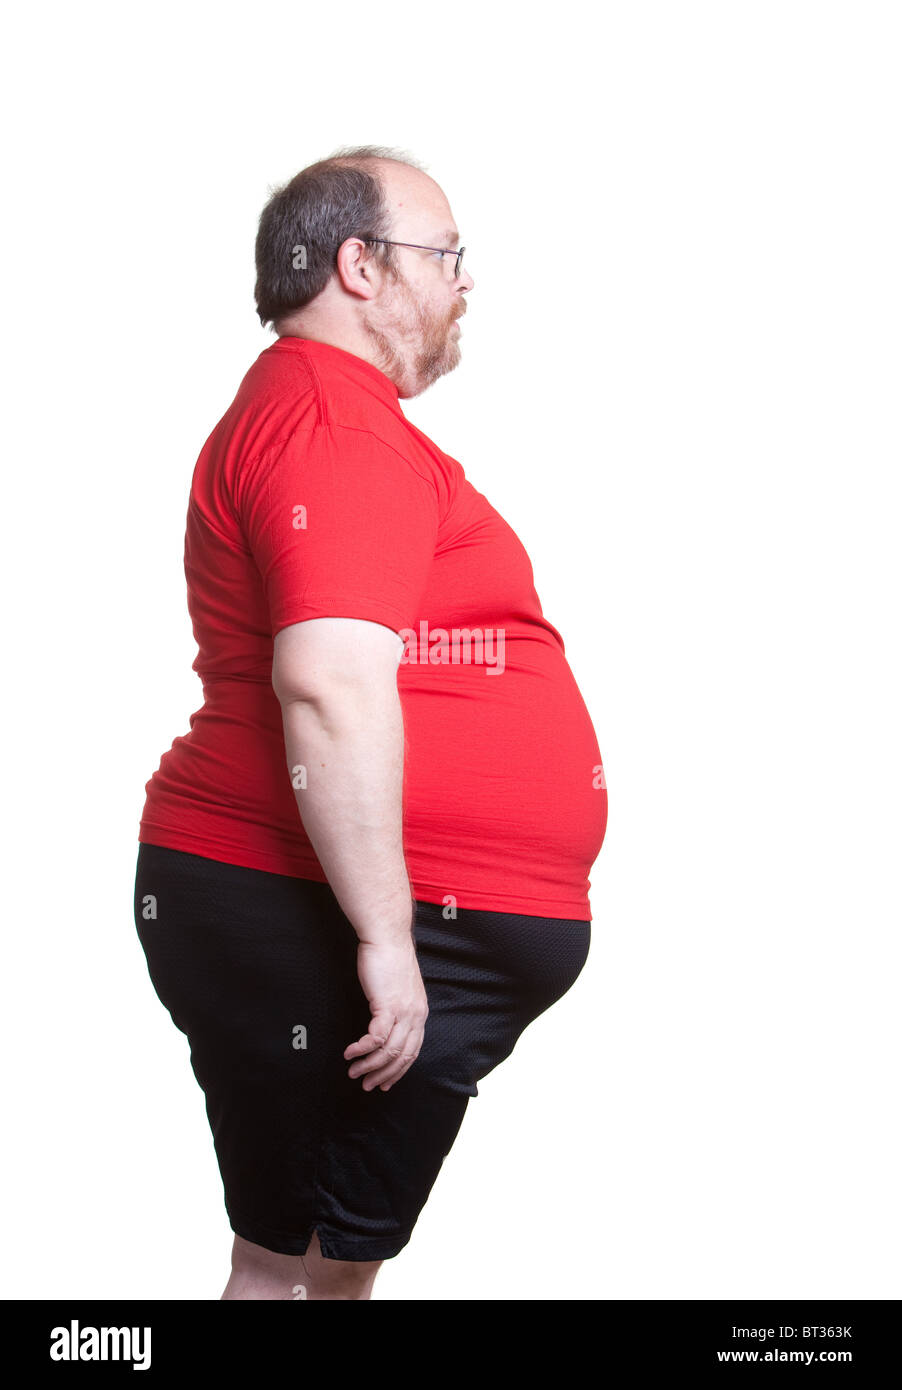 Obese man at 400lbs - right - Stock Image